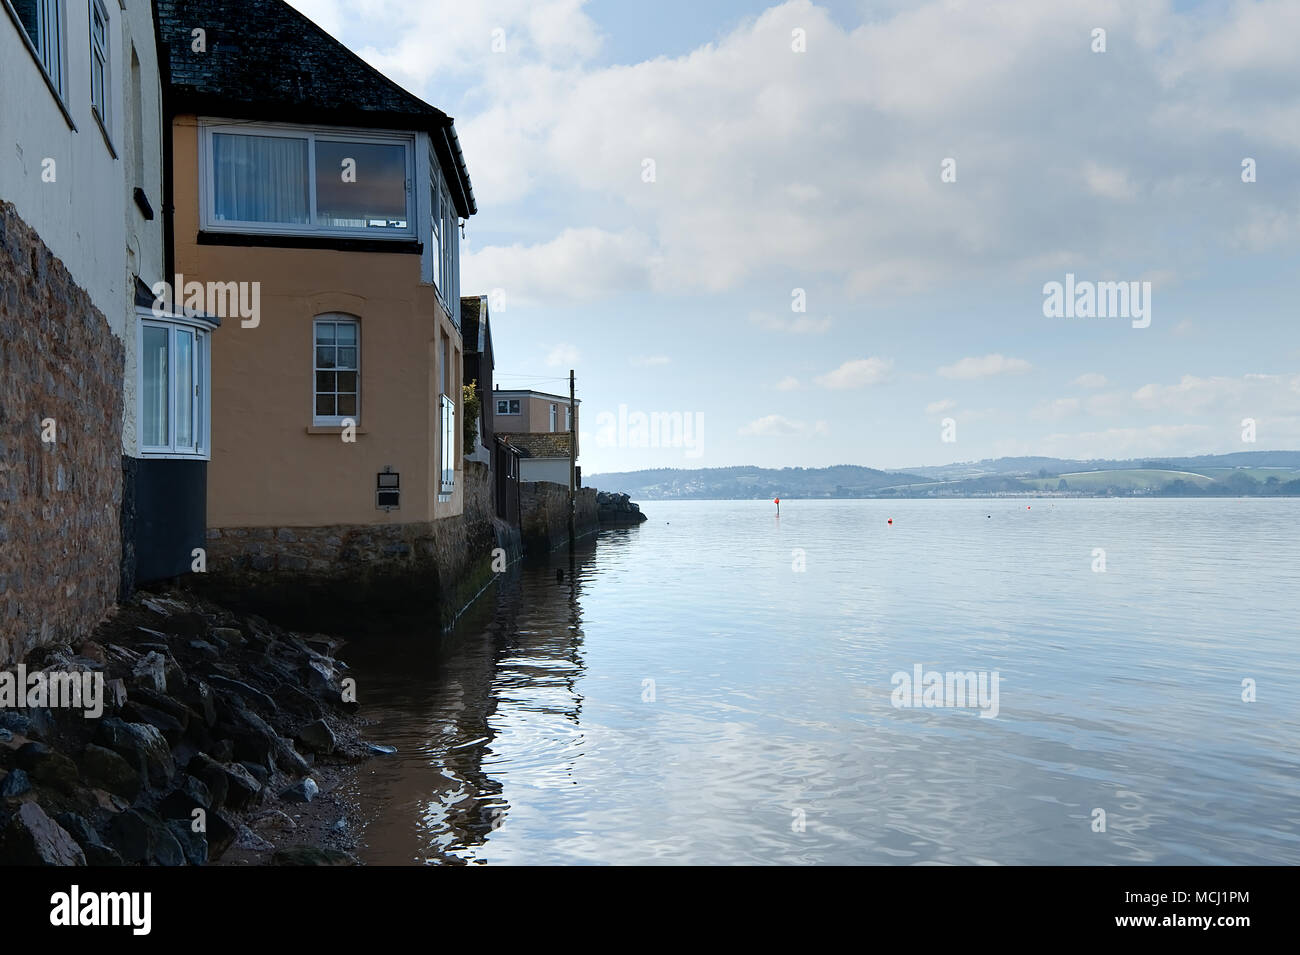 Living by the River Exe near Exeter in Devon, England. 21 March 2018 - Stock Image